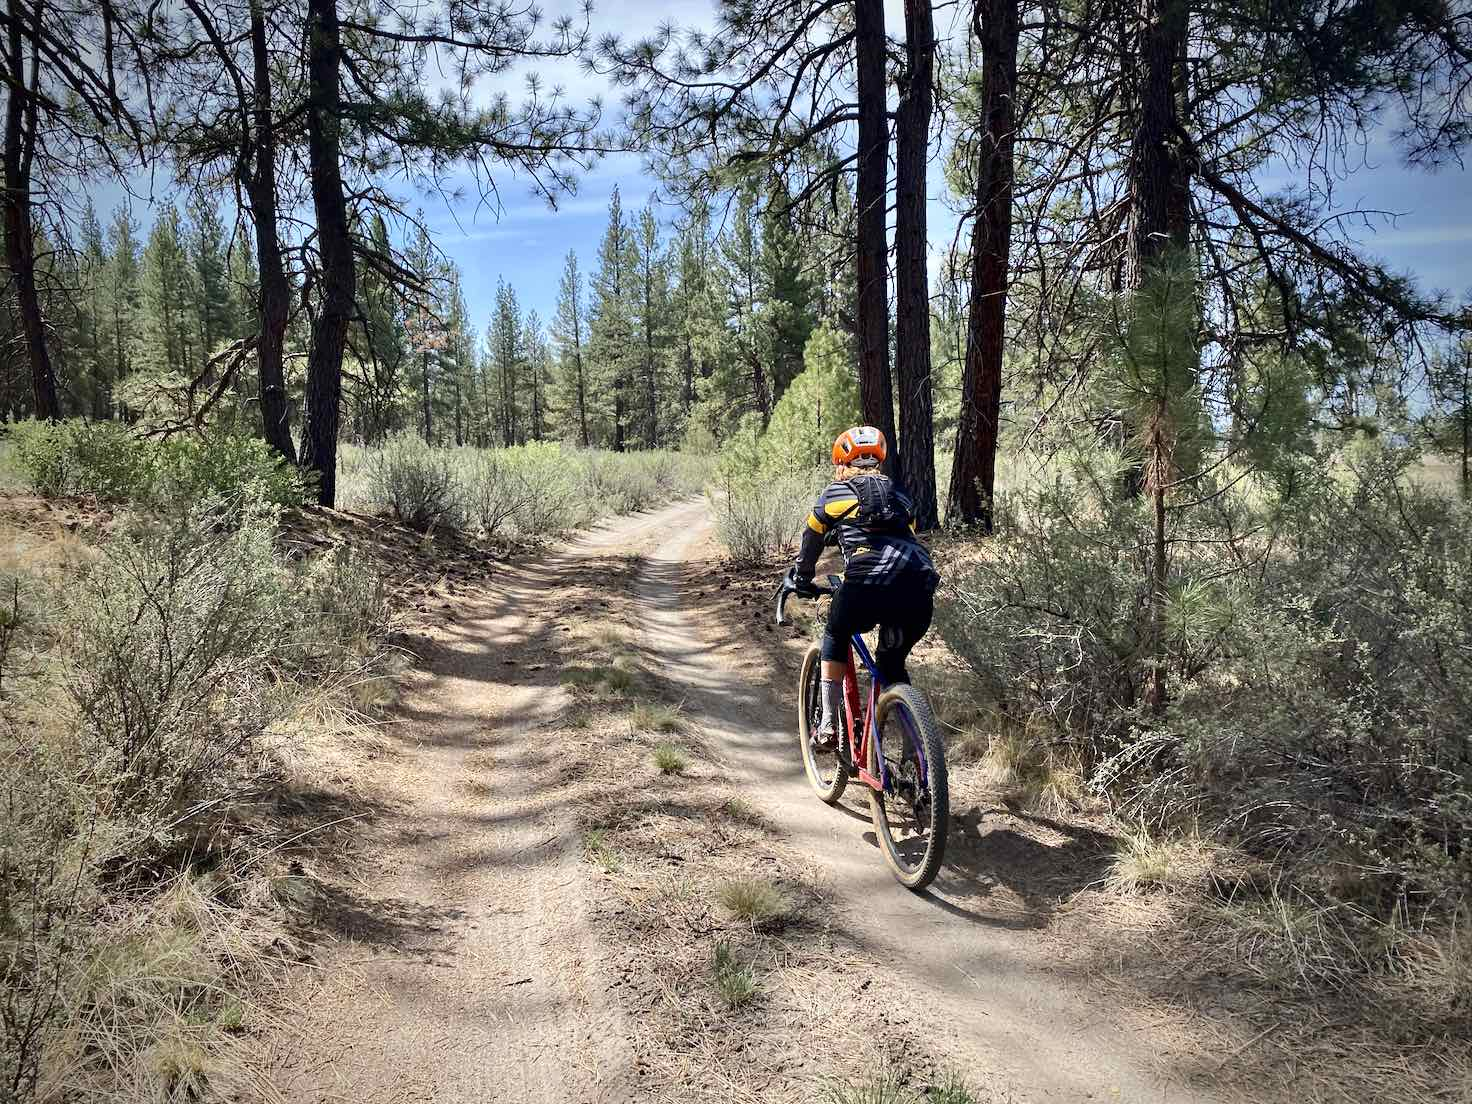 Gravel Girl riding through Winema National Forest on dirt road.